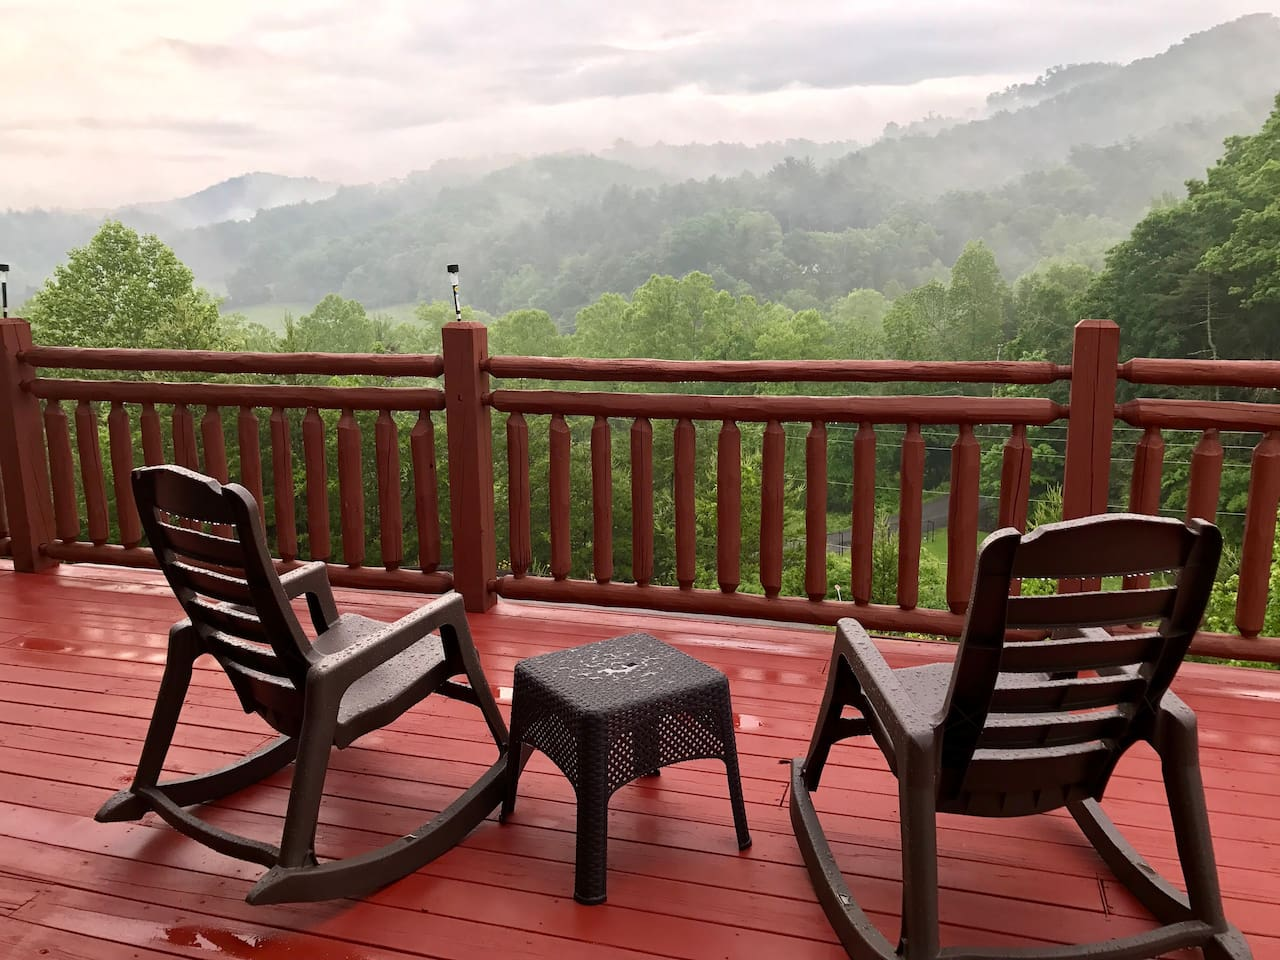 view on a rainy  day